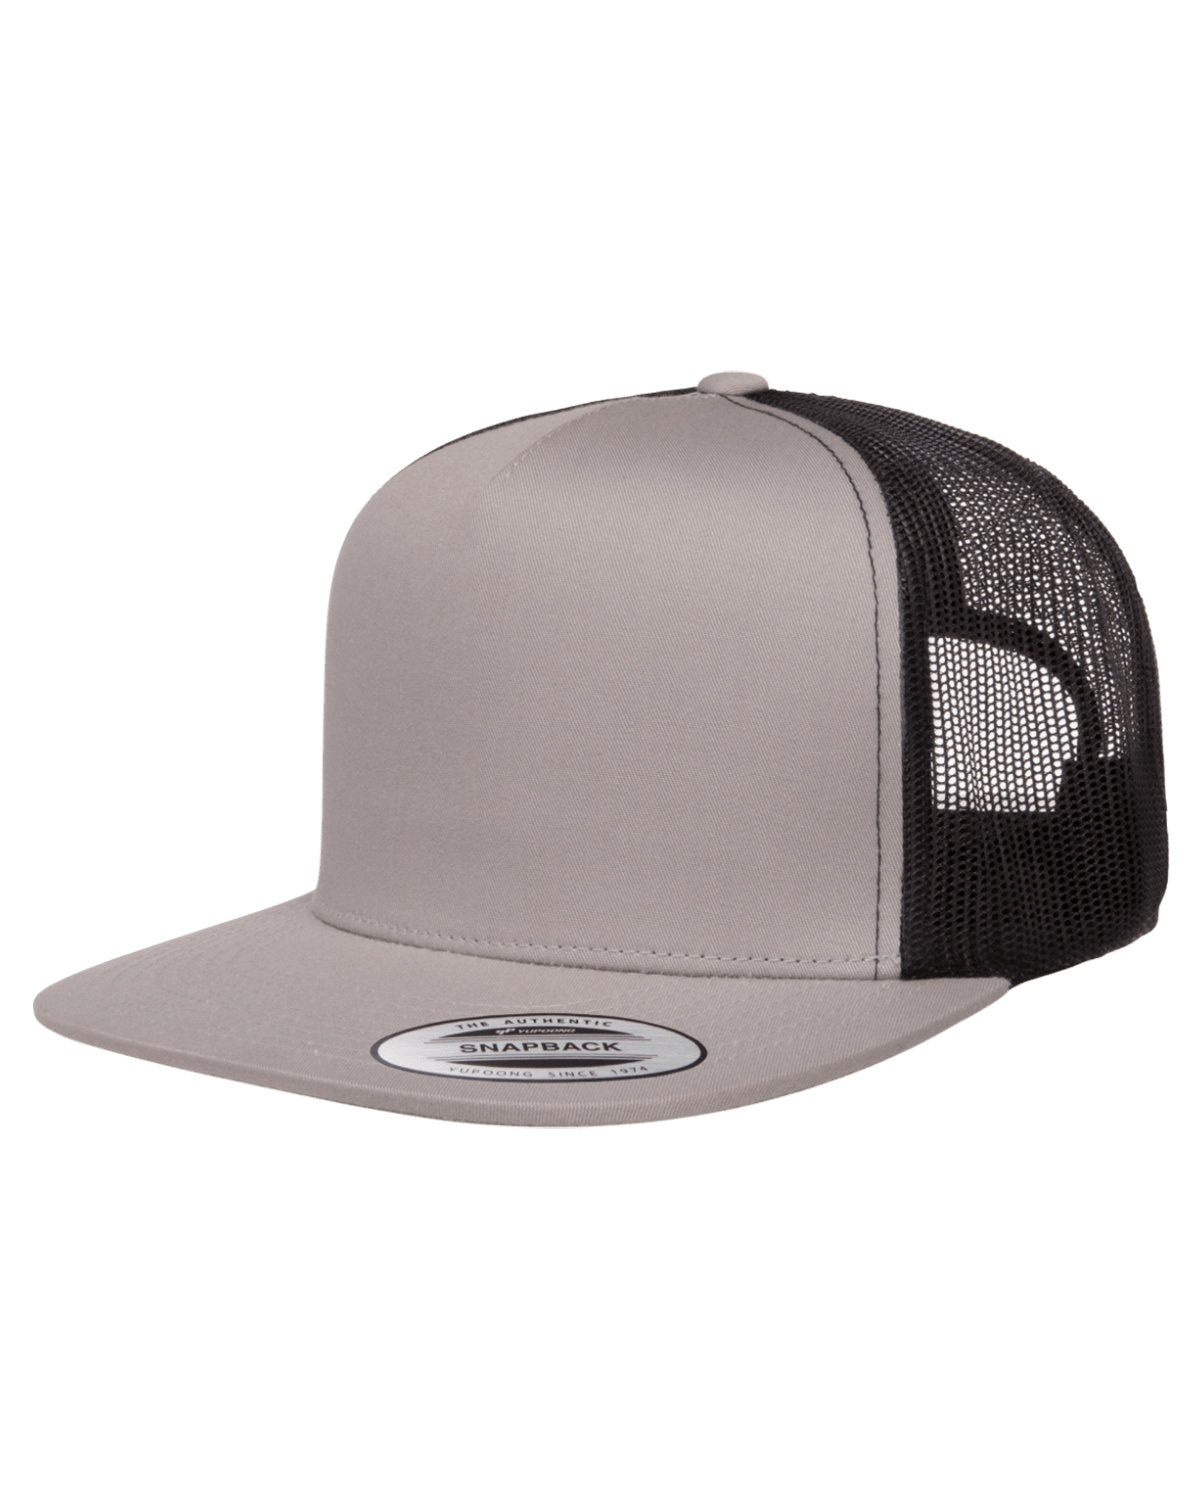 Yupoong Adult 5-Panel Classic Trucker Cap SILVER/ BLACK